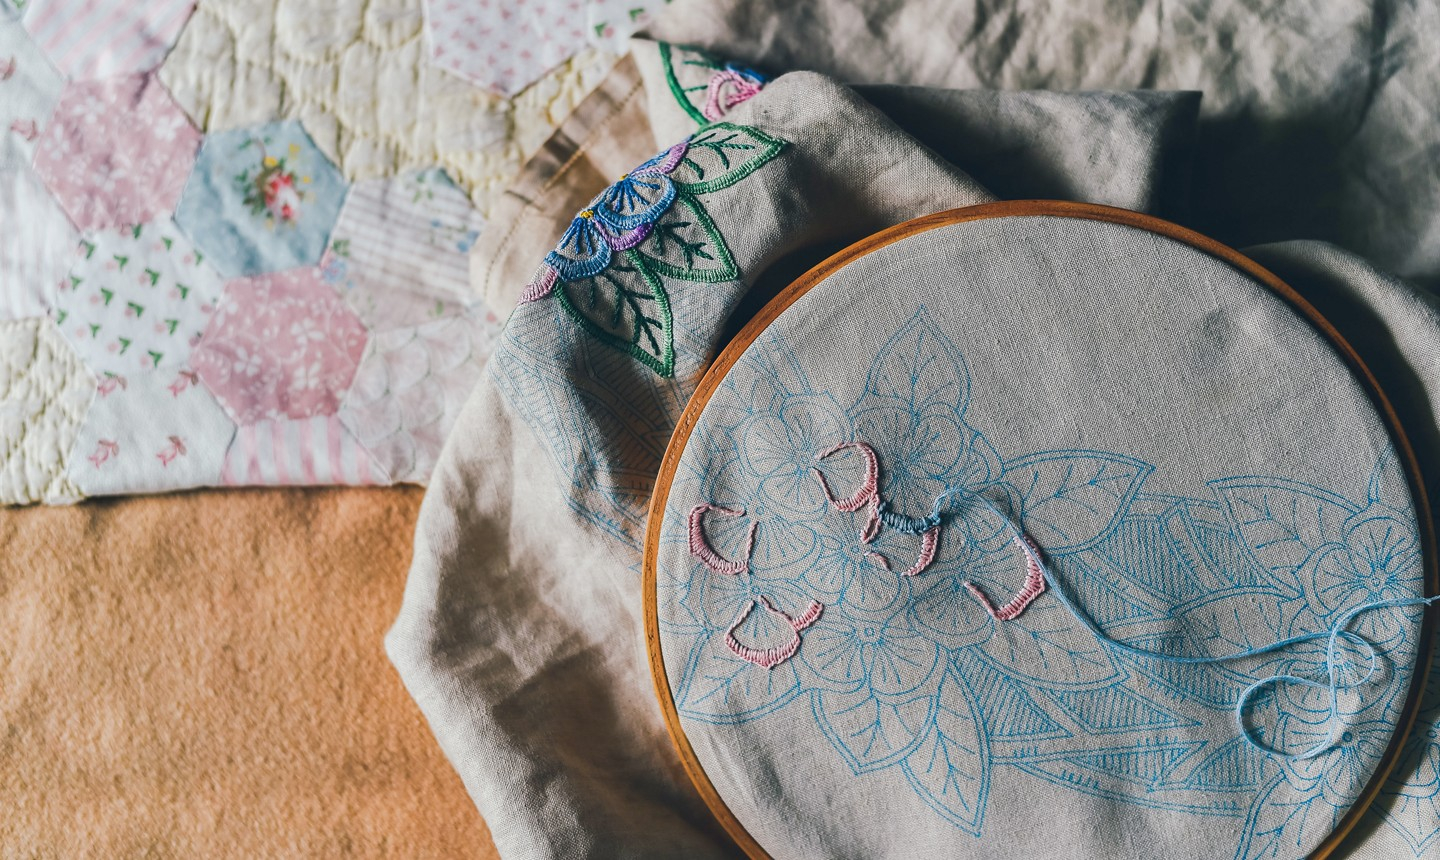 How To Read Embroidery Patterns 5 Simple Ways To Transfer Embroidery Designs